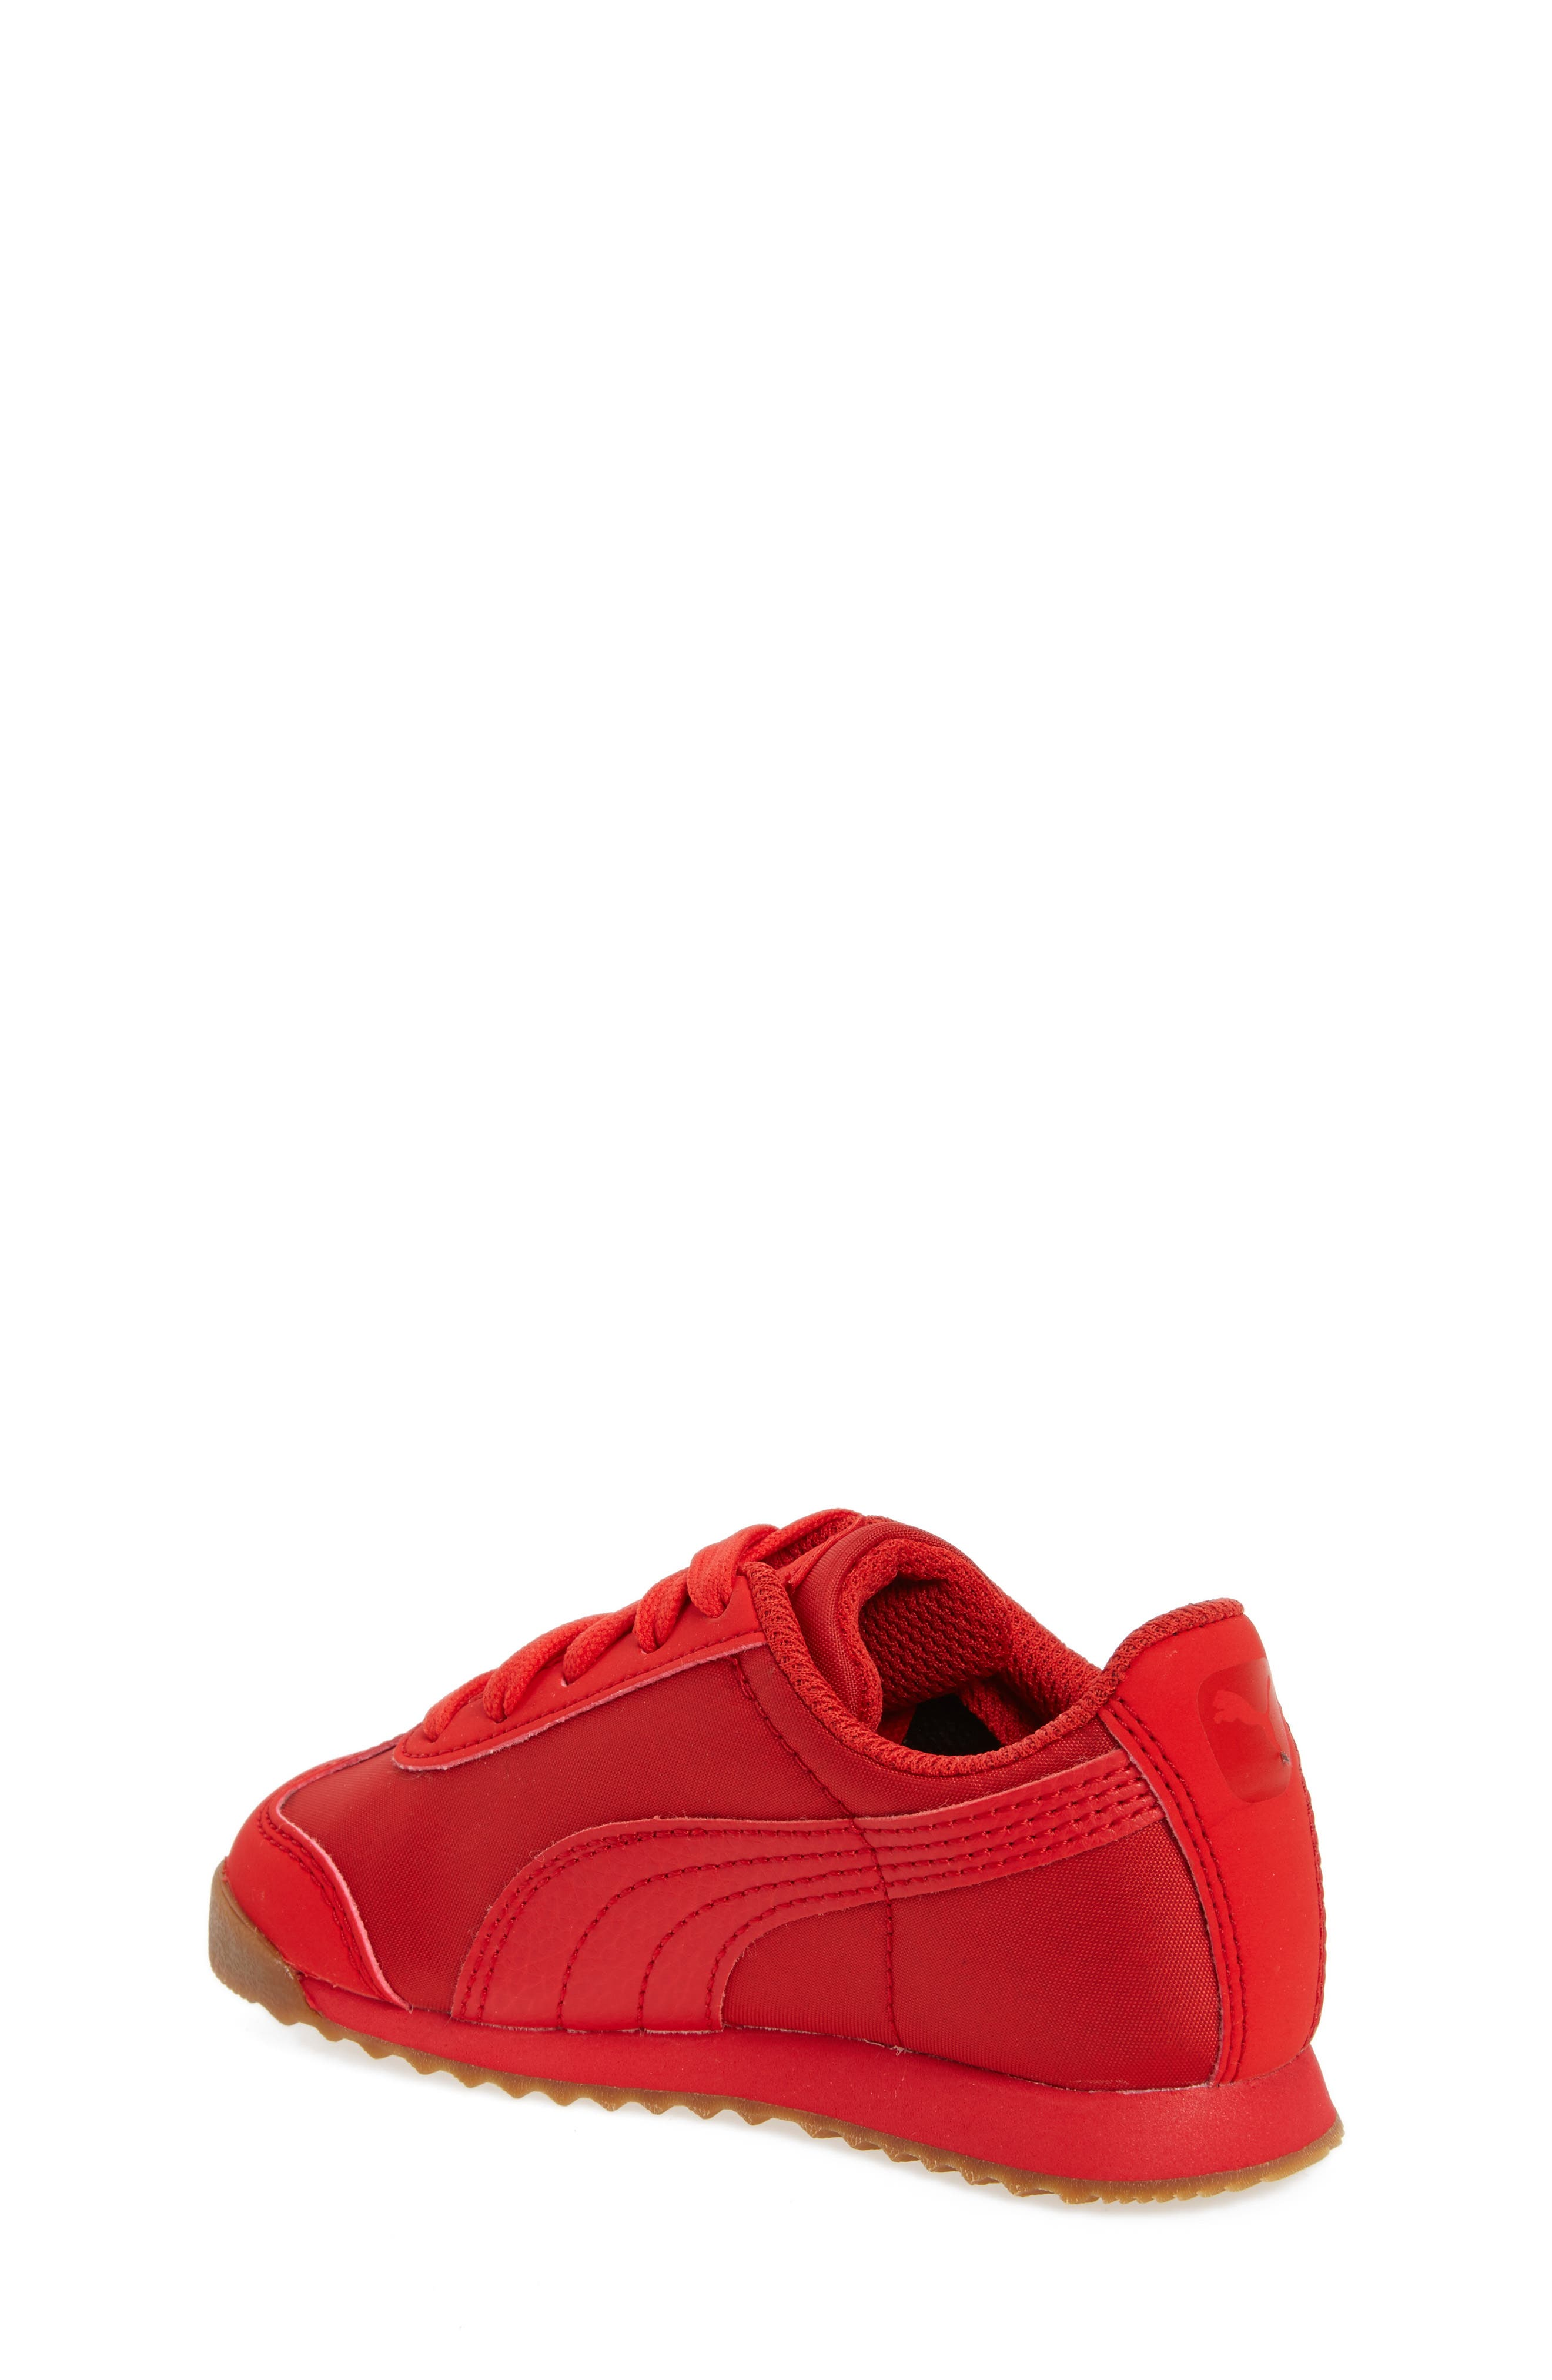 Roma Basic Summer Sneaker,                             Alternate thumbnail 4, color,